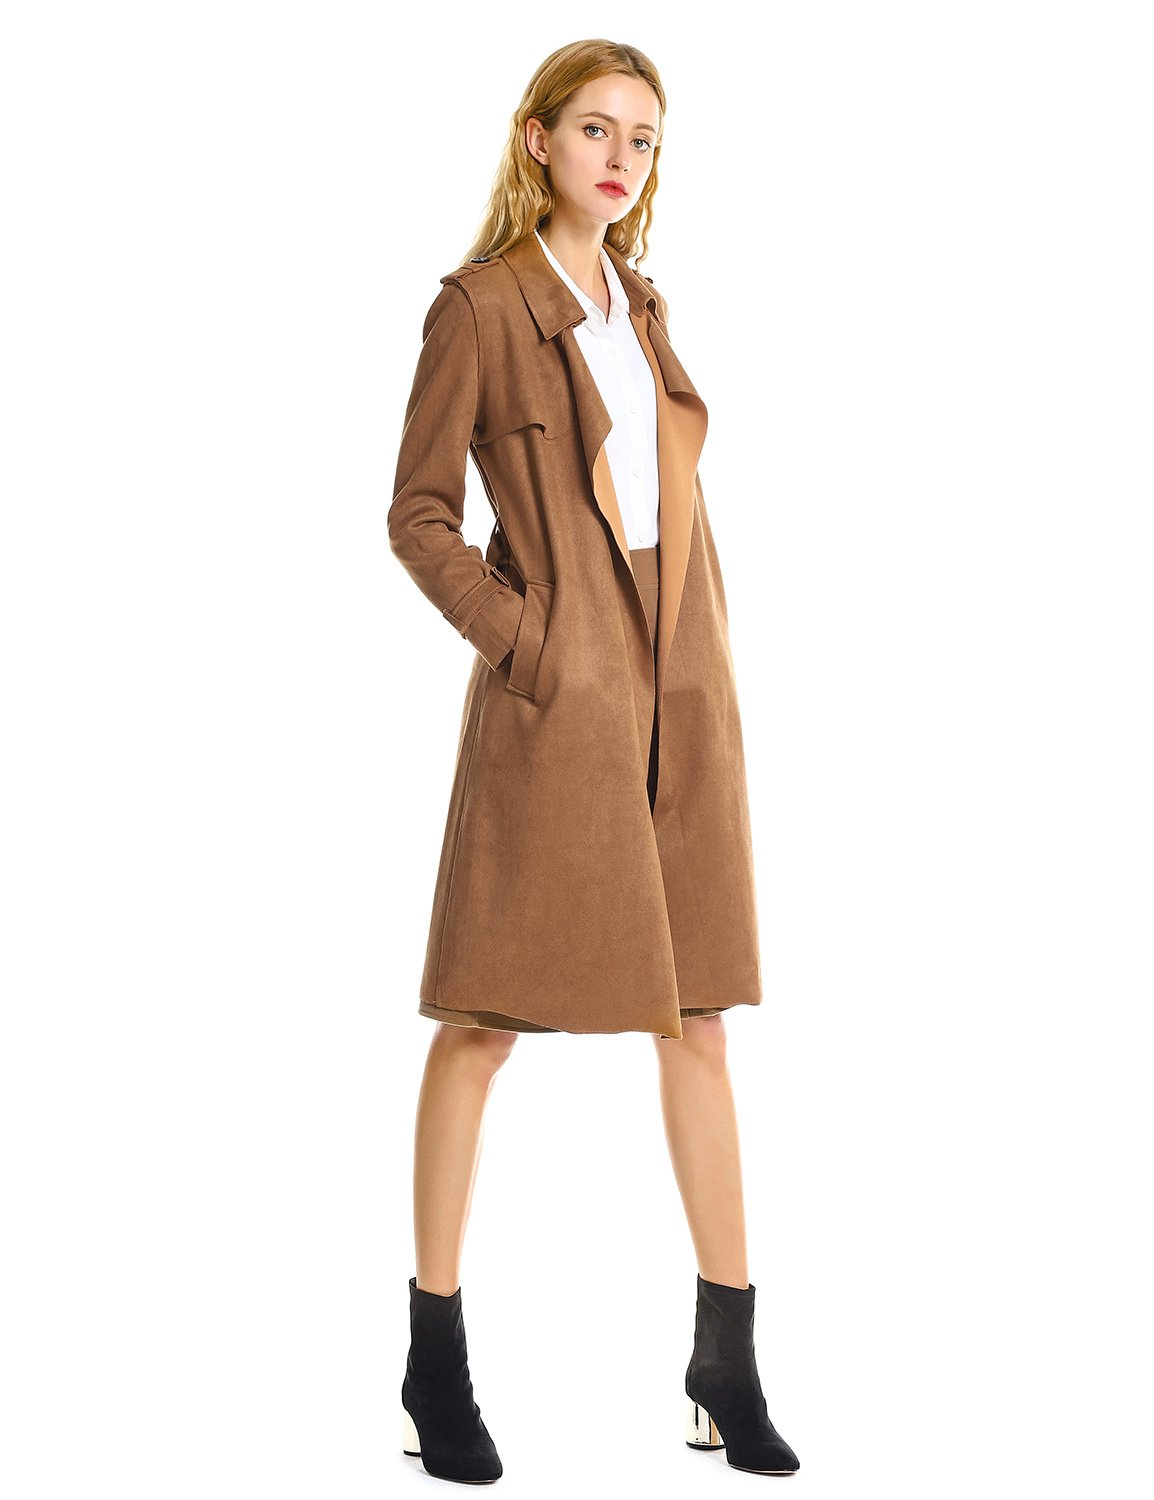 ZAN.STYLE Women Suede Coats Long Duster Jacket Trench Coat with Belt (XL, Brown)